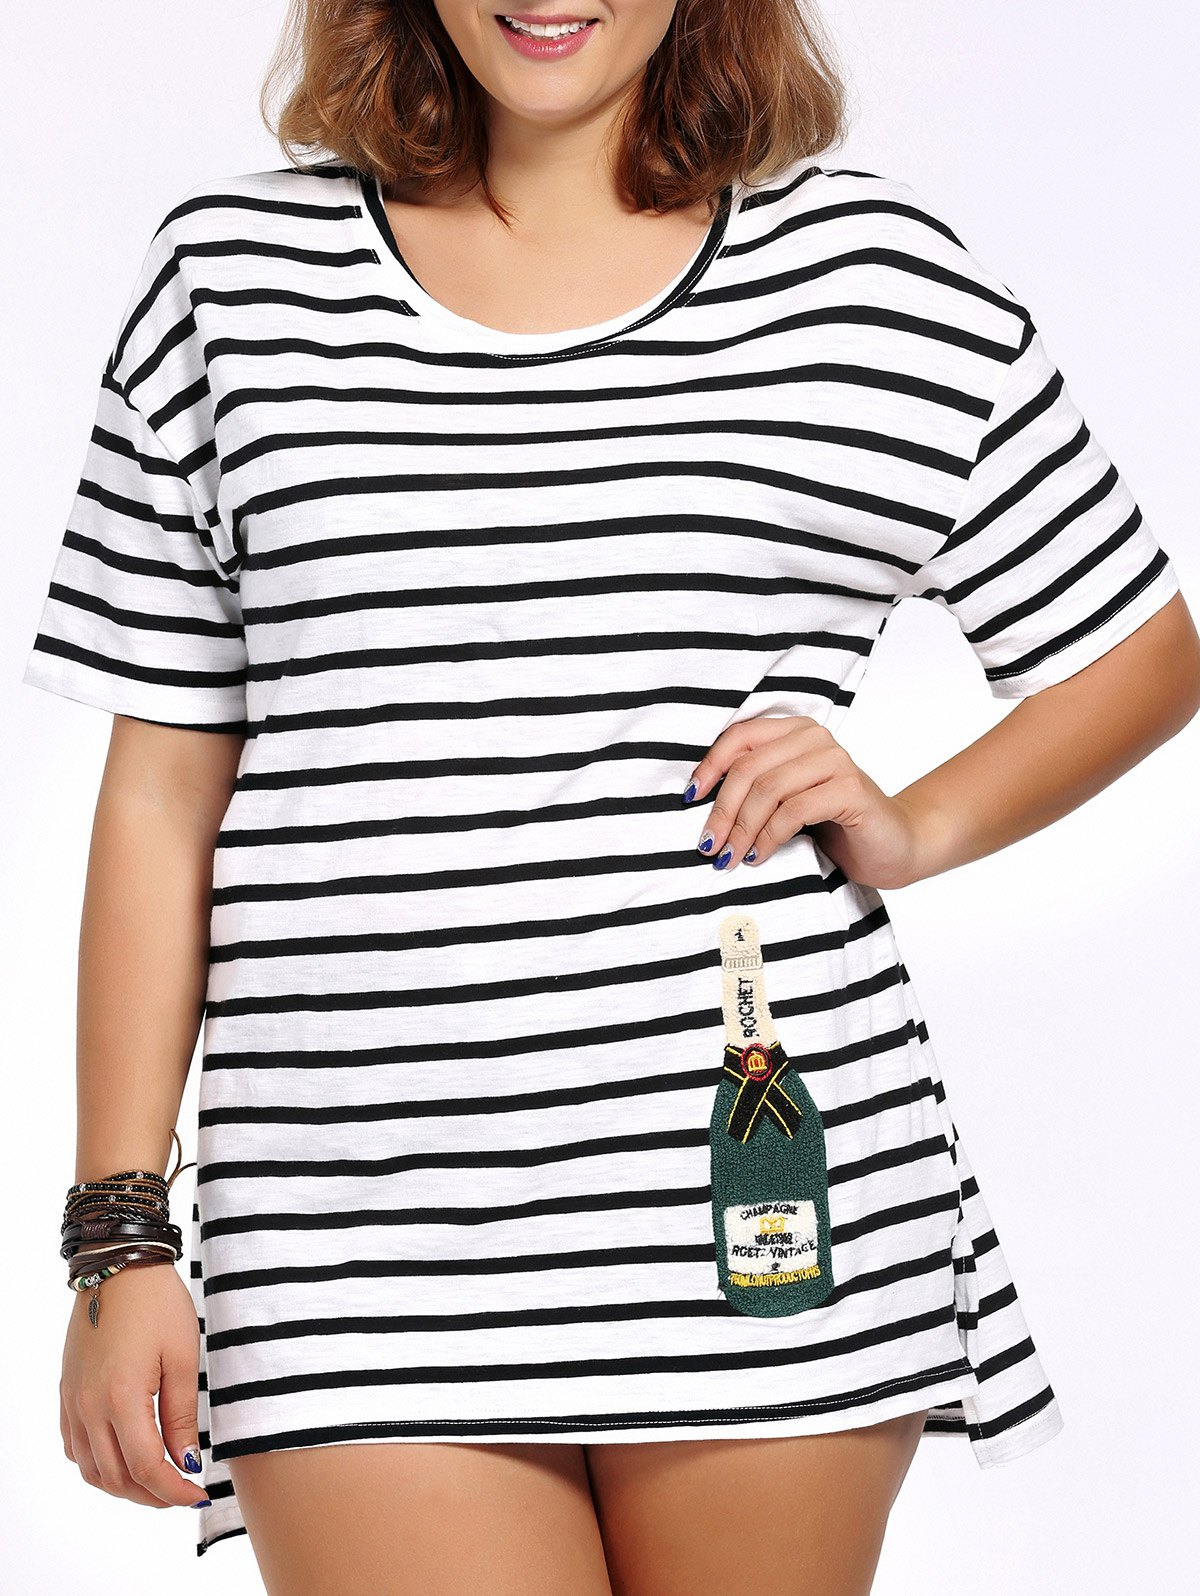 Chic Plus Size High-Low Hem Striped Women's Long T-Shirt - WHITE/BLACK 4XL